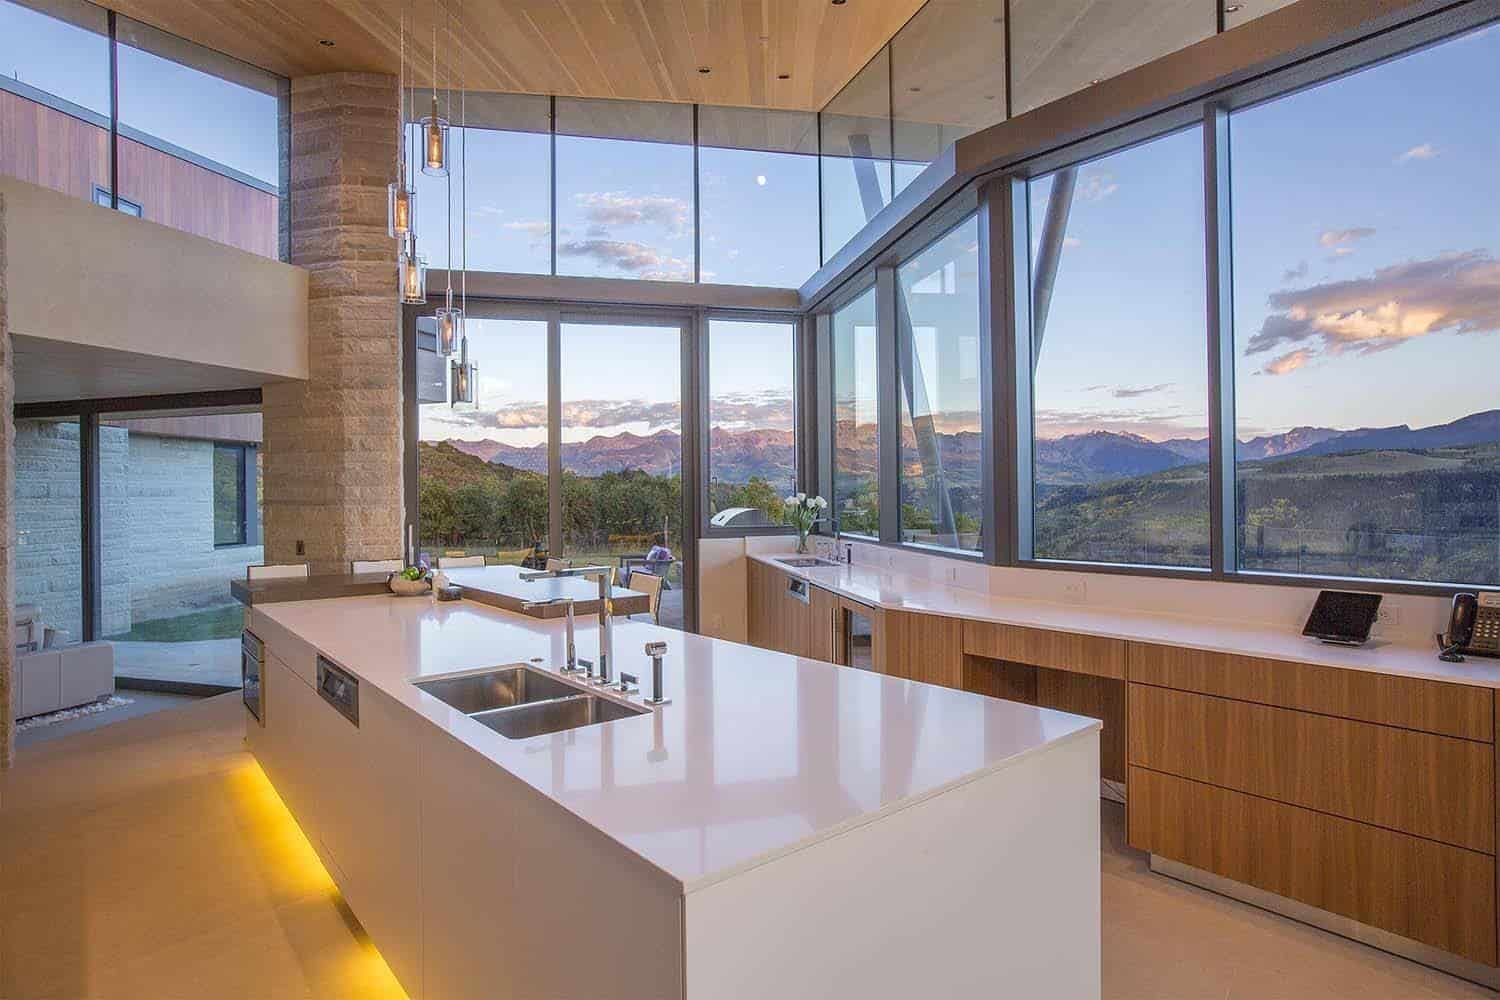 Modern-Residence-Colorado-Poss Architecture-22-1 Kindesign